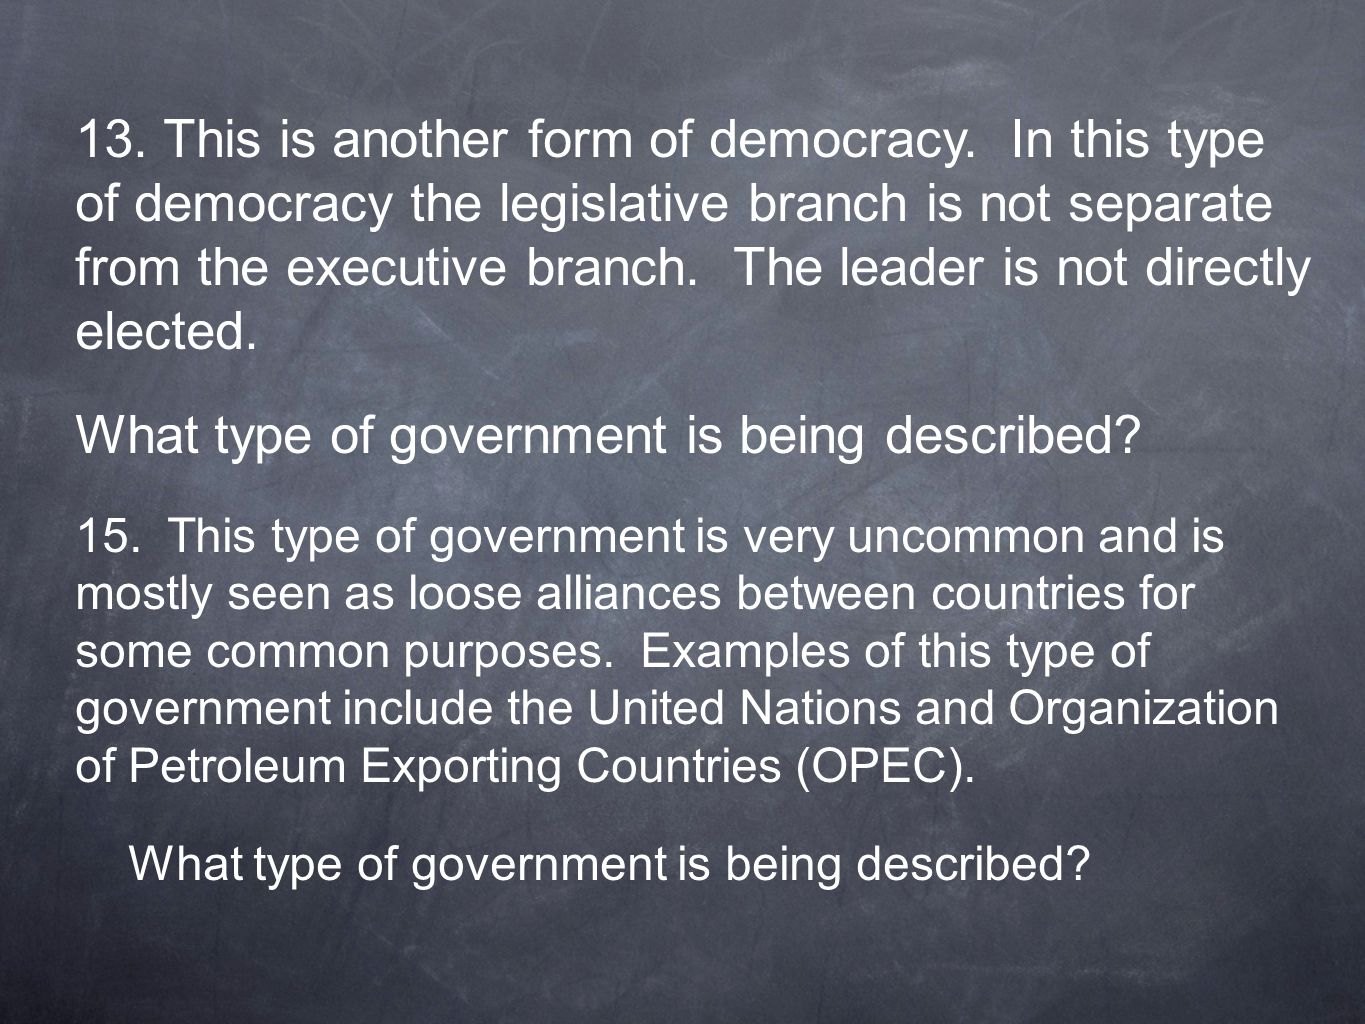 What type of government is being described